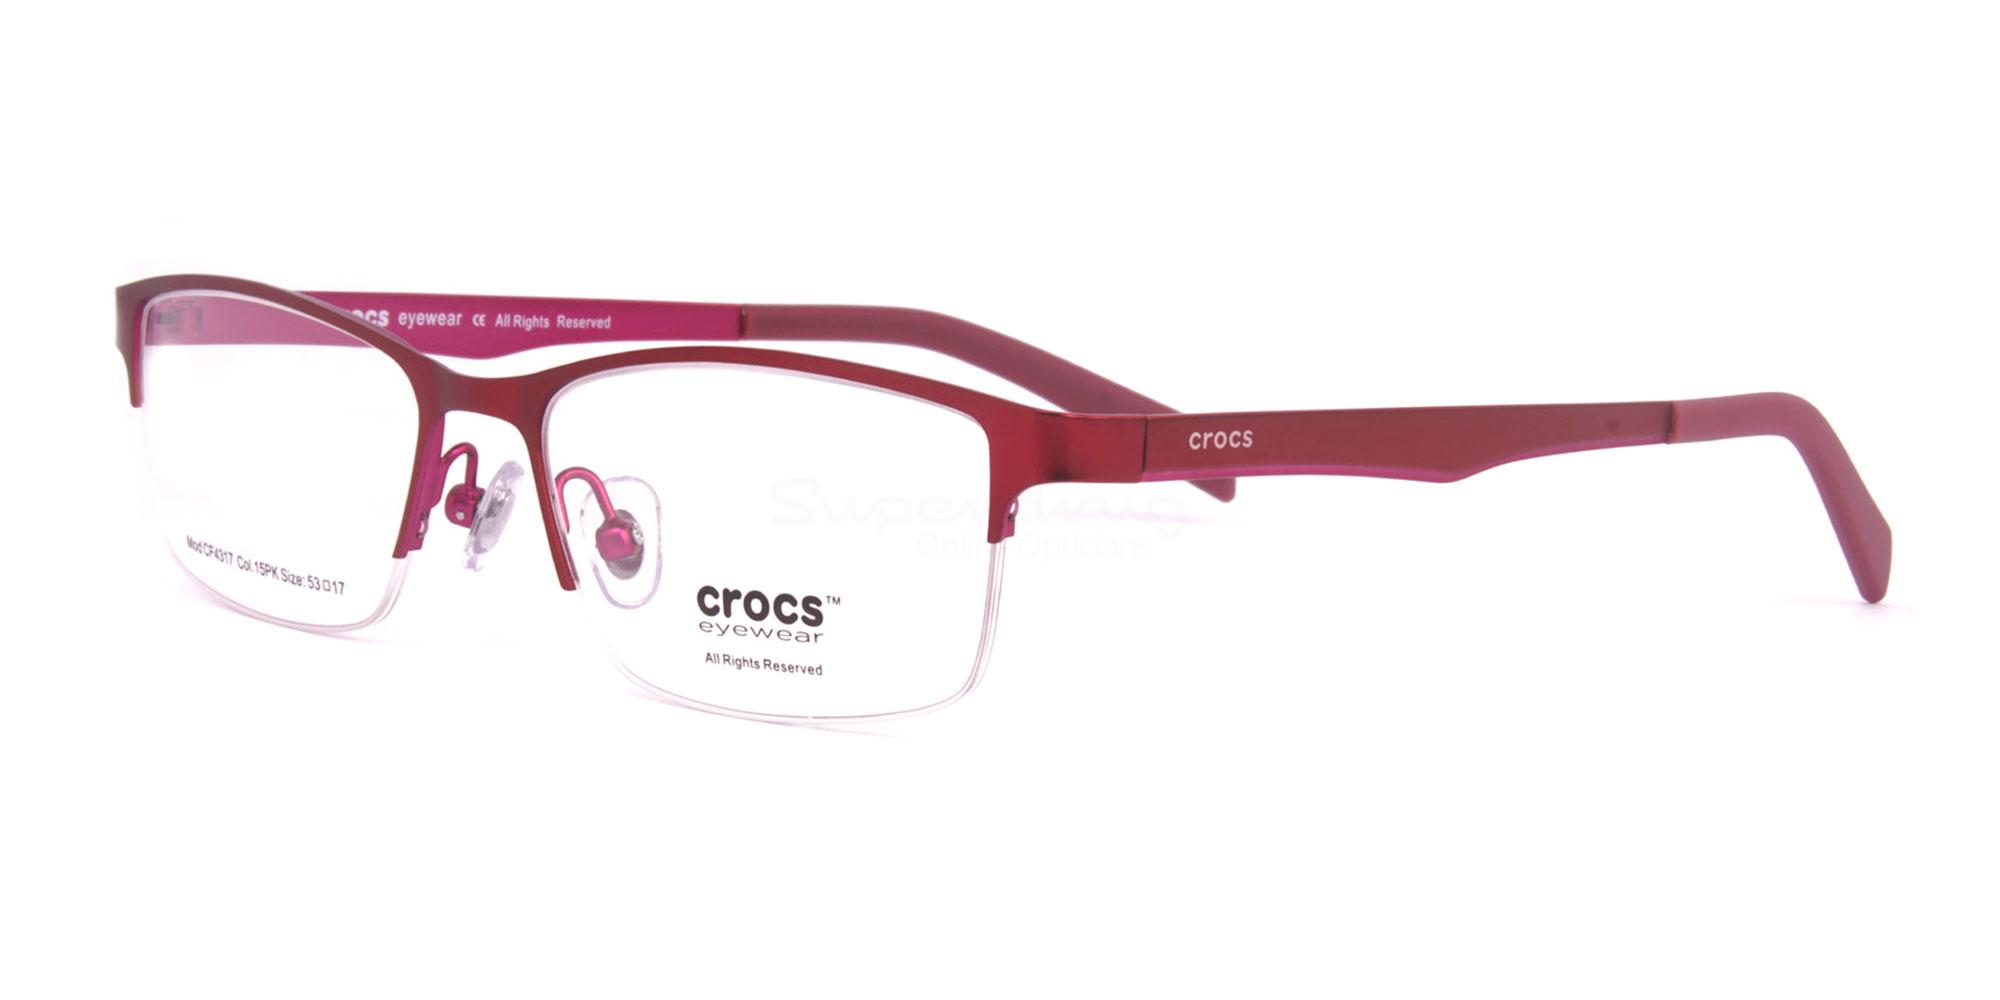 15PK CF4317 Glasses, Crocs Eyewear